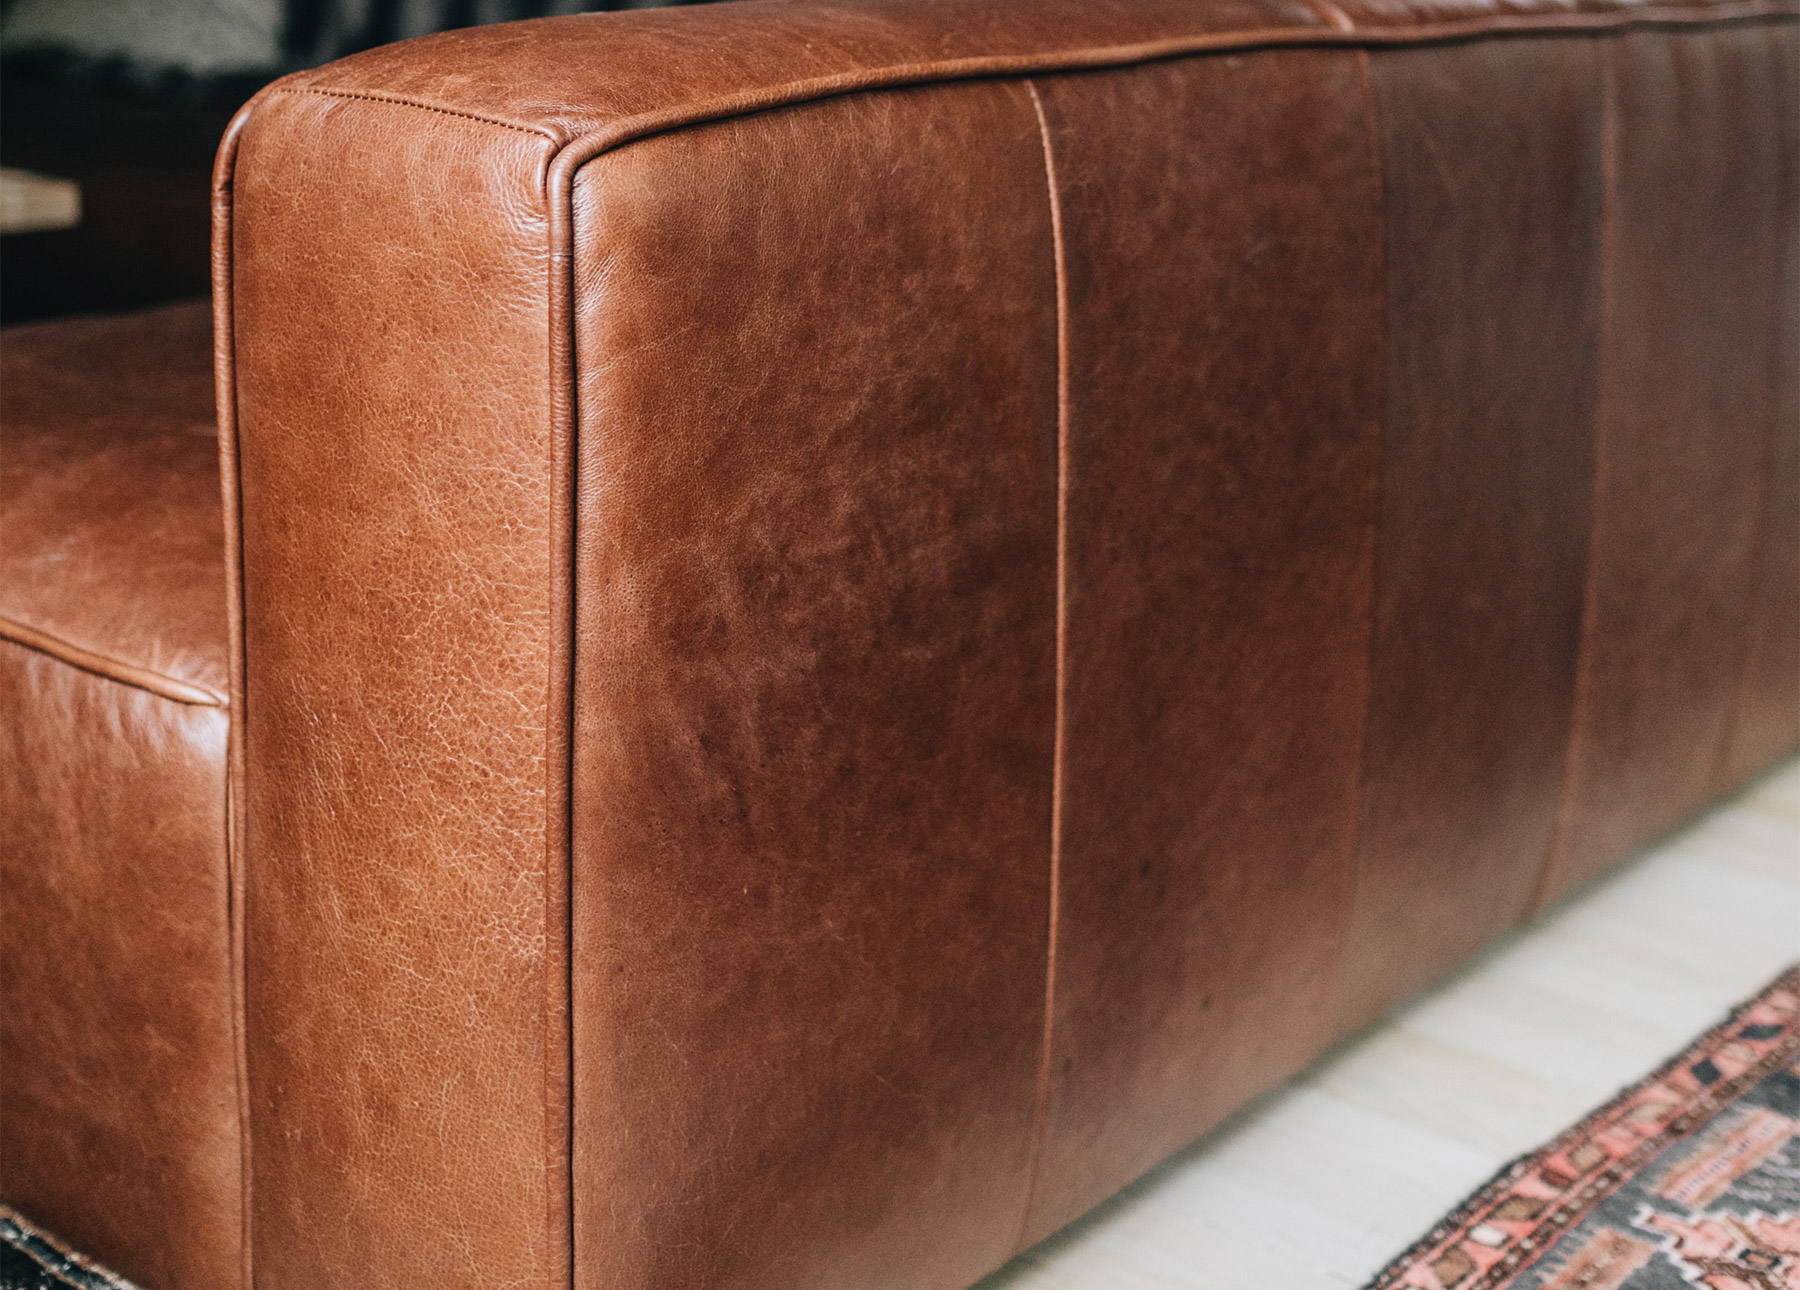 Natural variation and texture in rich, full grain brown leather.